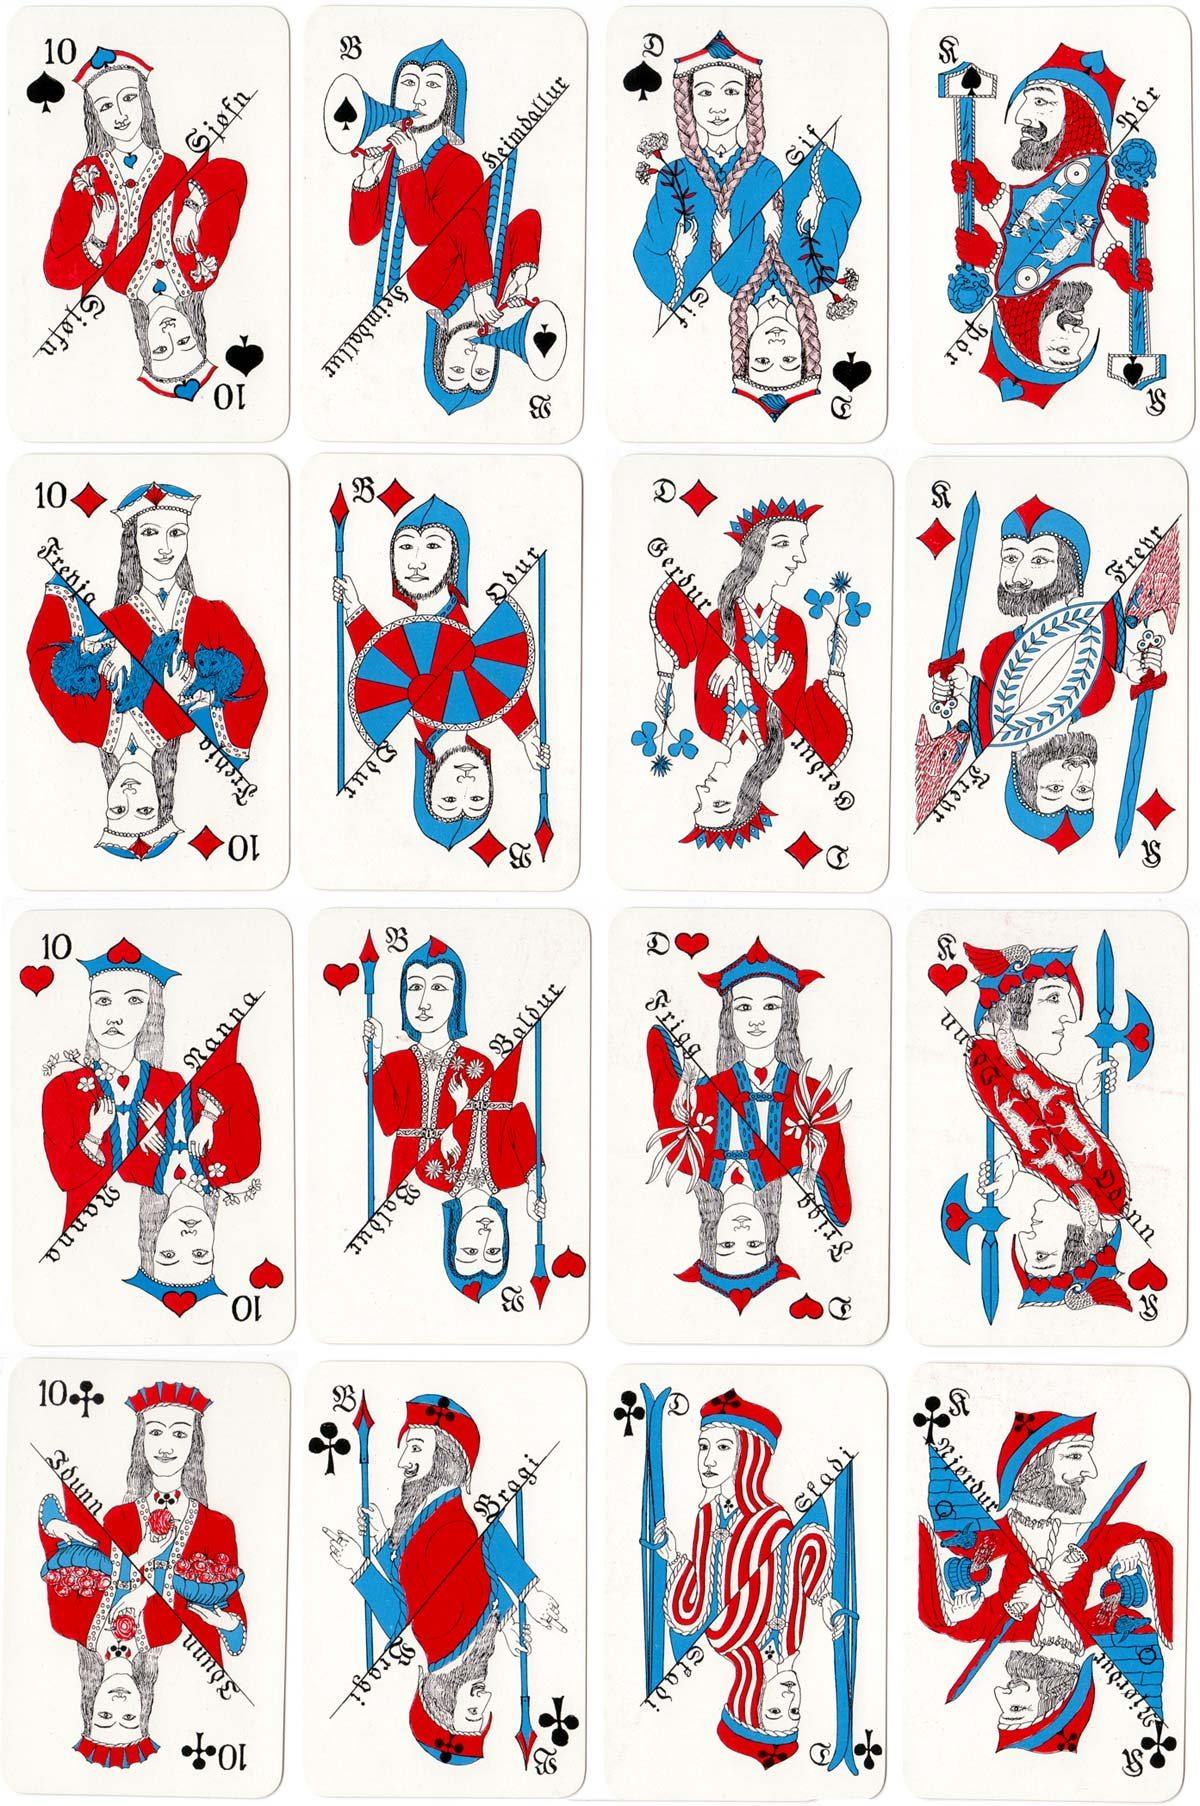 Icelandic Mythological Playing Cards manufactured by Handa, 1958